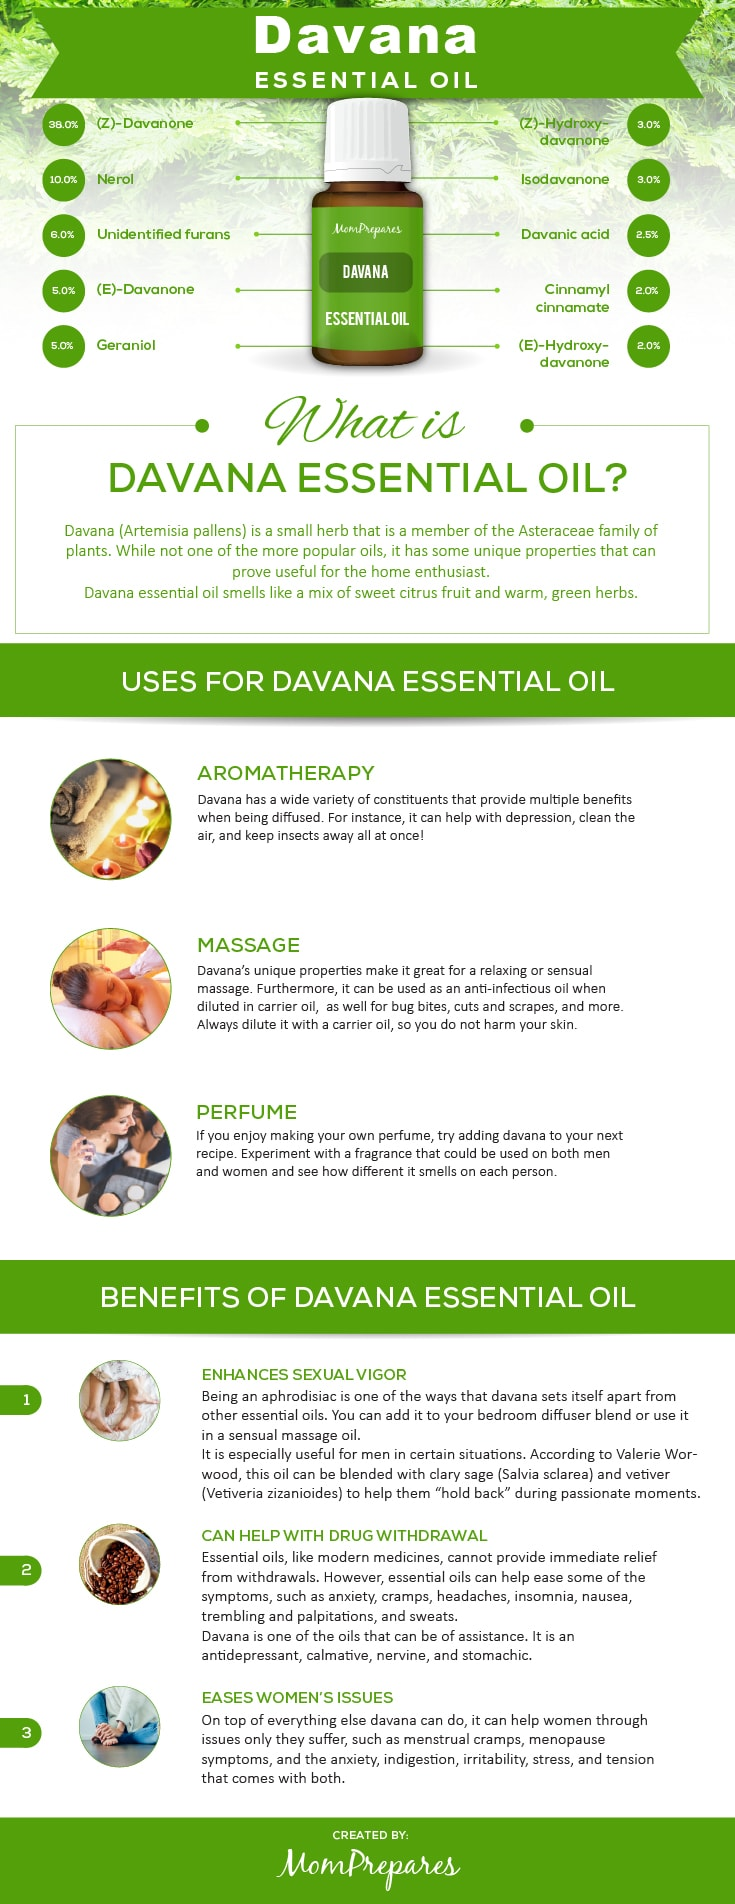 Davana Essential Oil The Complete Uses And Benefits Guide